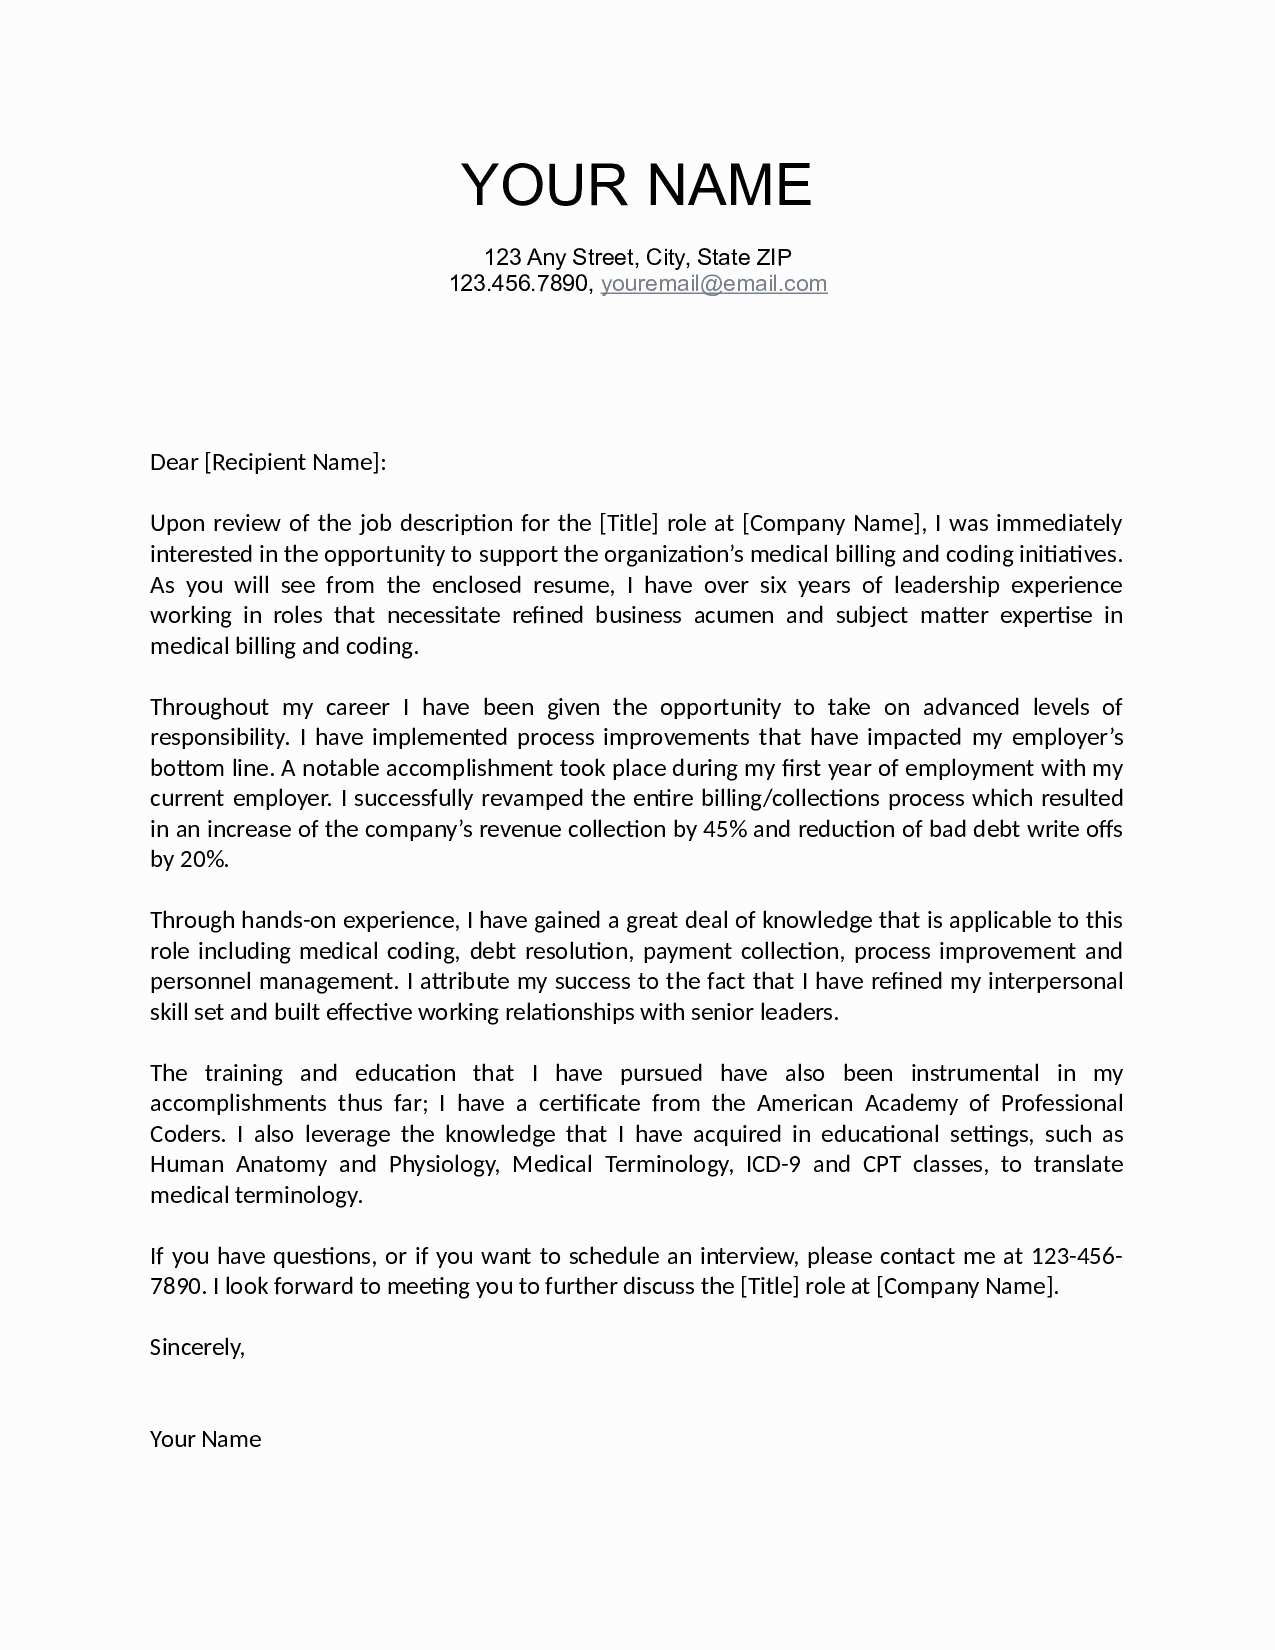 Letter Of Introduction Template - Reference Resume Introduction Letter